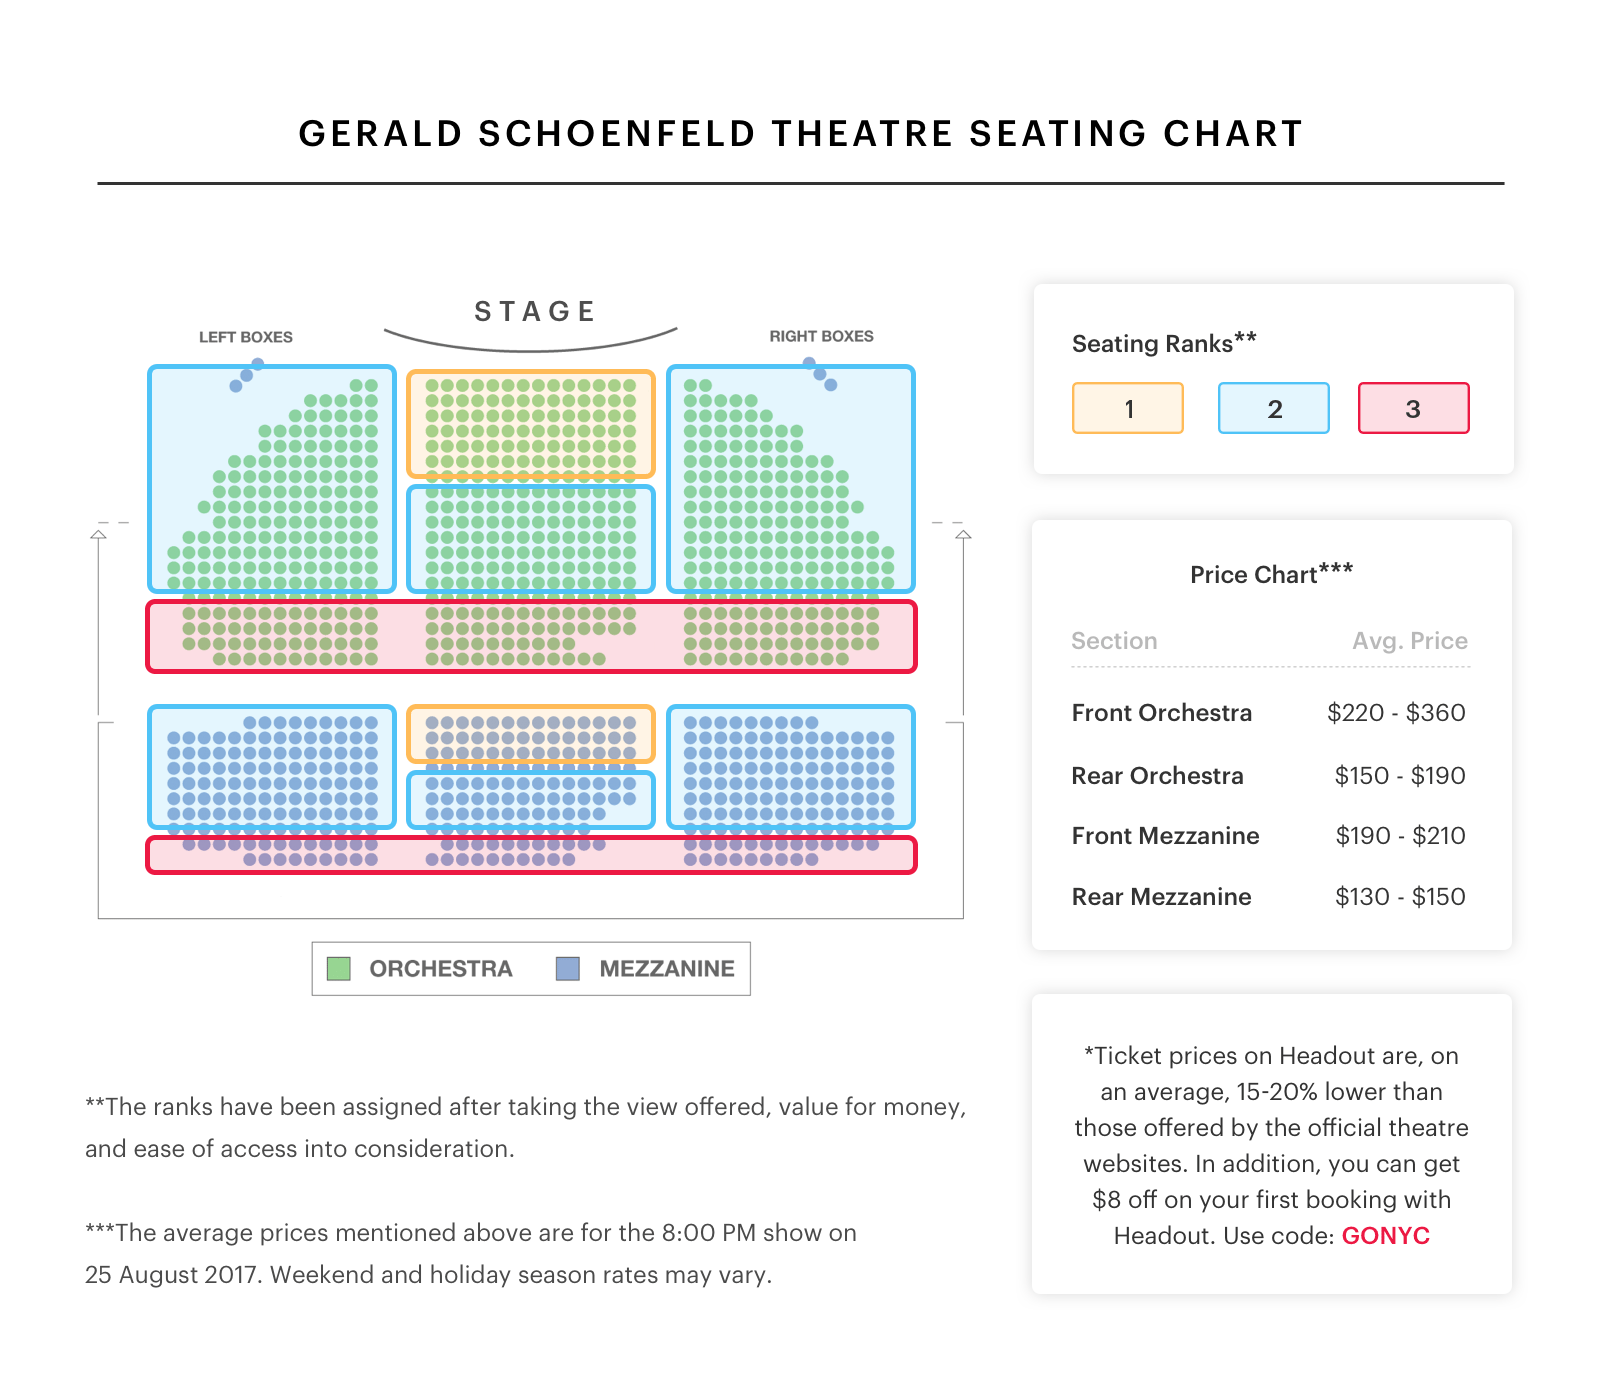 schoenfeld theatre seating chart best seats pro tips and more navigating the schoenfeld theatre seating chart